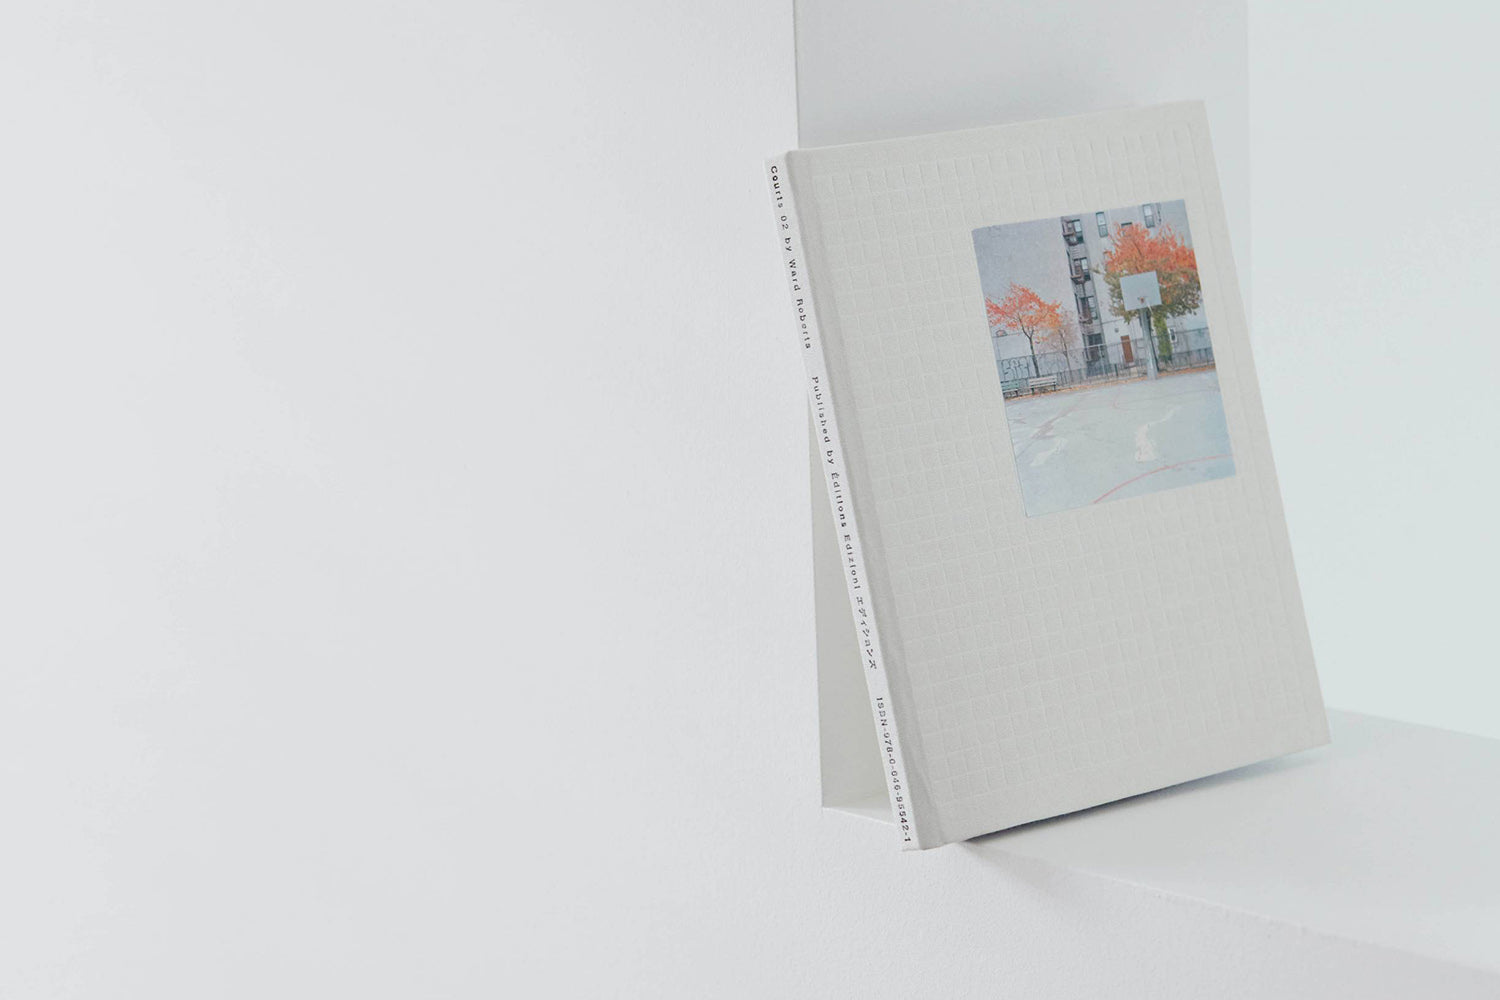 Zé Studio: Book design and publishing for Courts 02